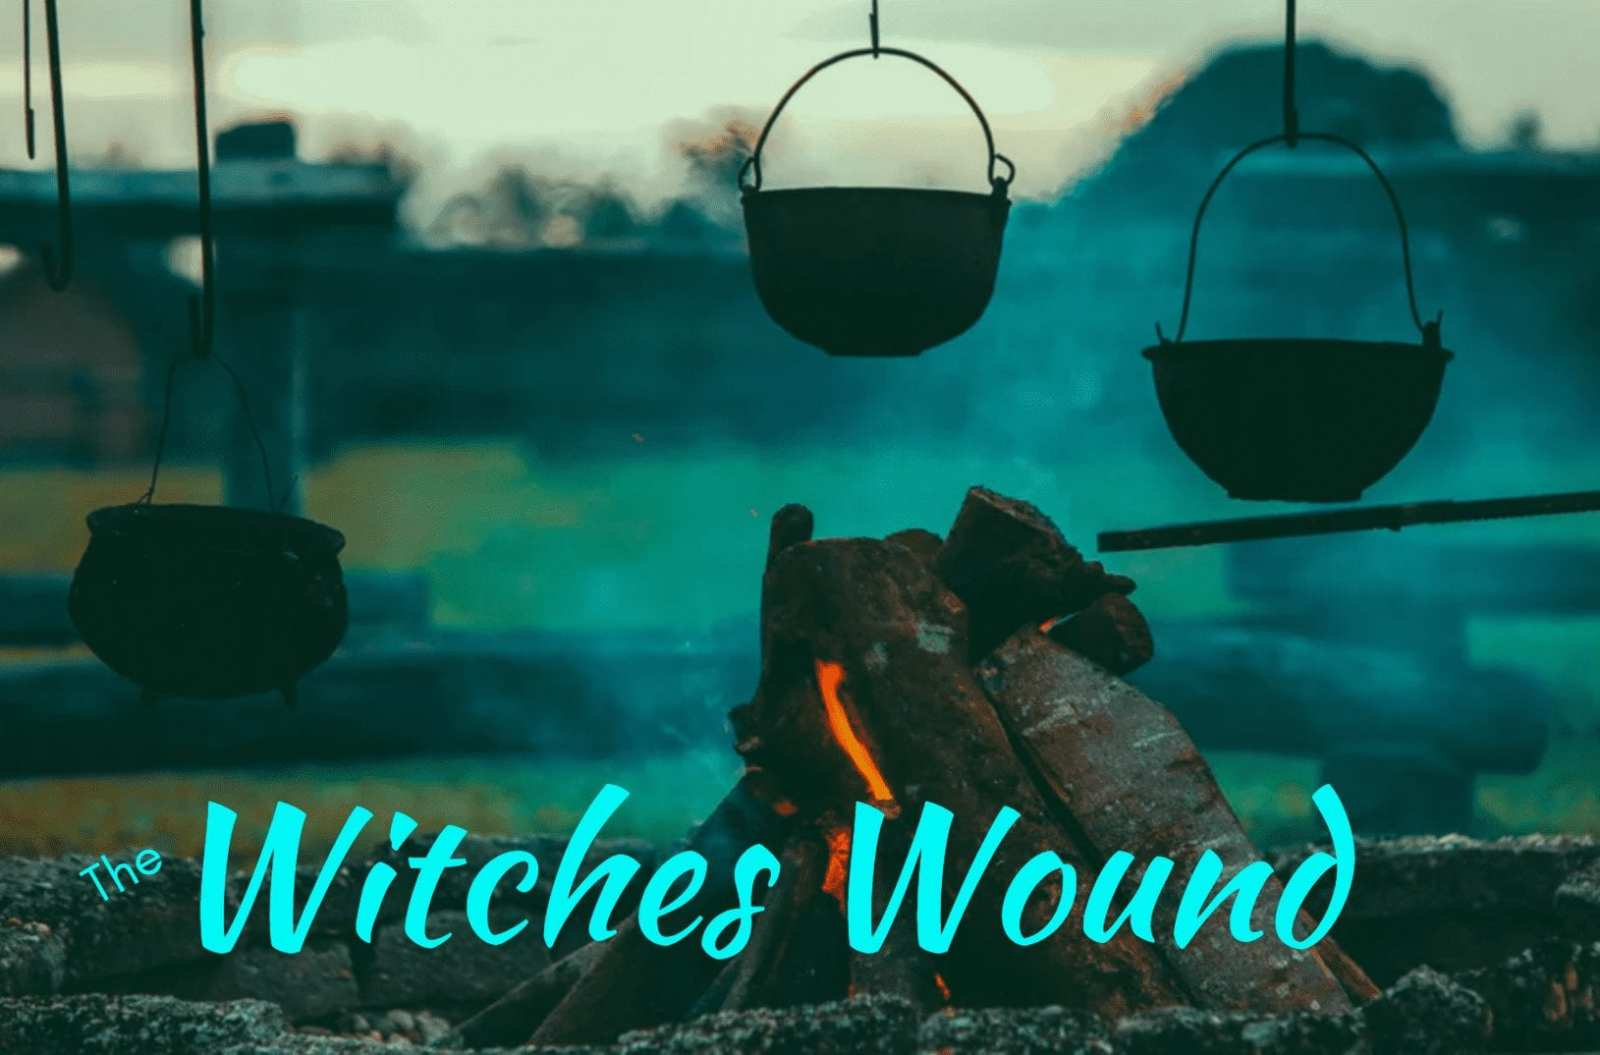 The Witches Wound